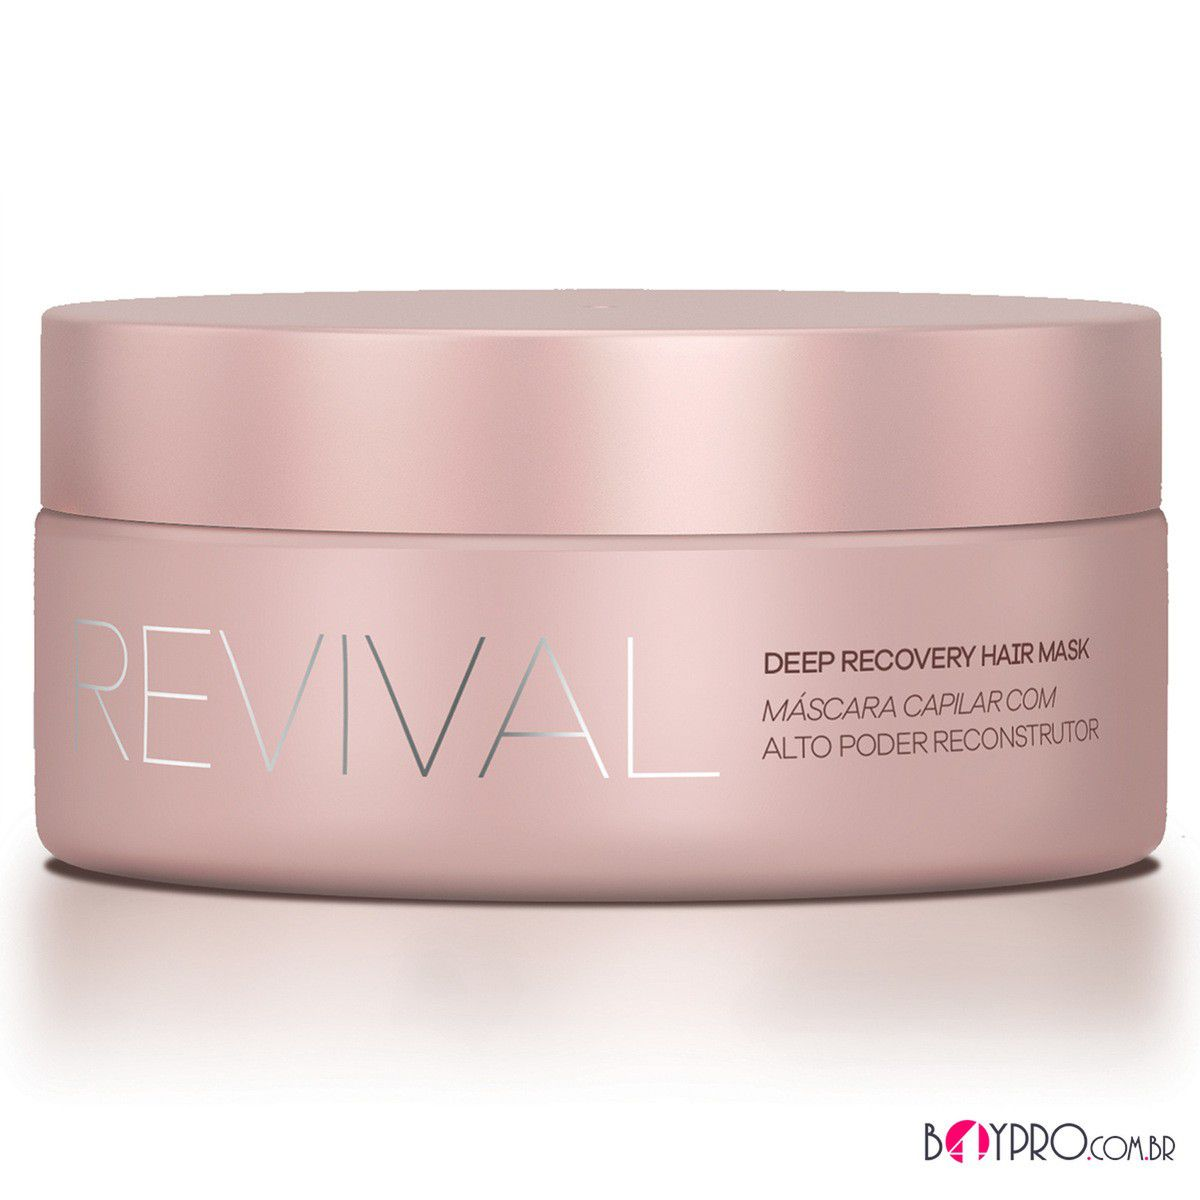 BRAÉ REVIVAL MÁSCARA CAPILAR - 200G - HOME CARE